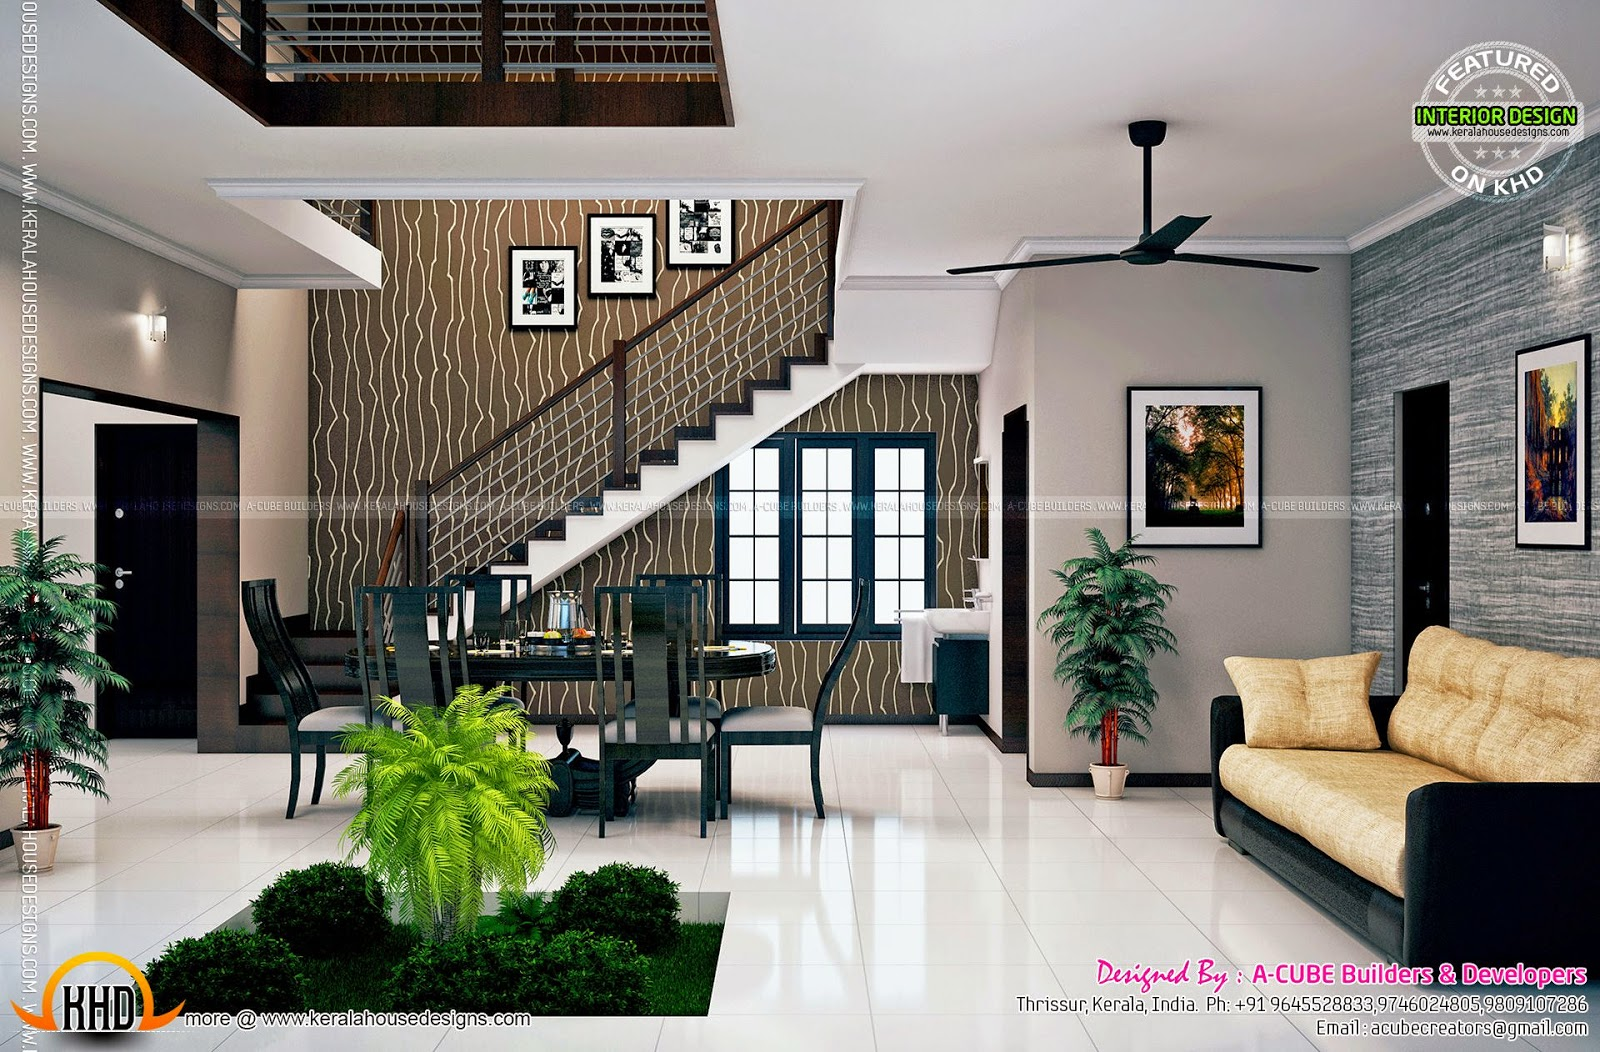 Kerala interior design ideas kerala home design and for Home interior design room